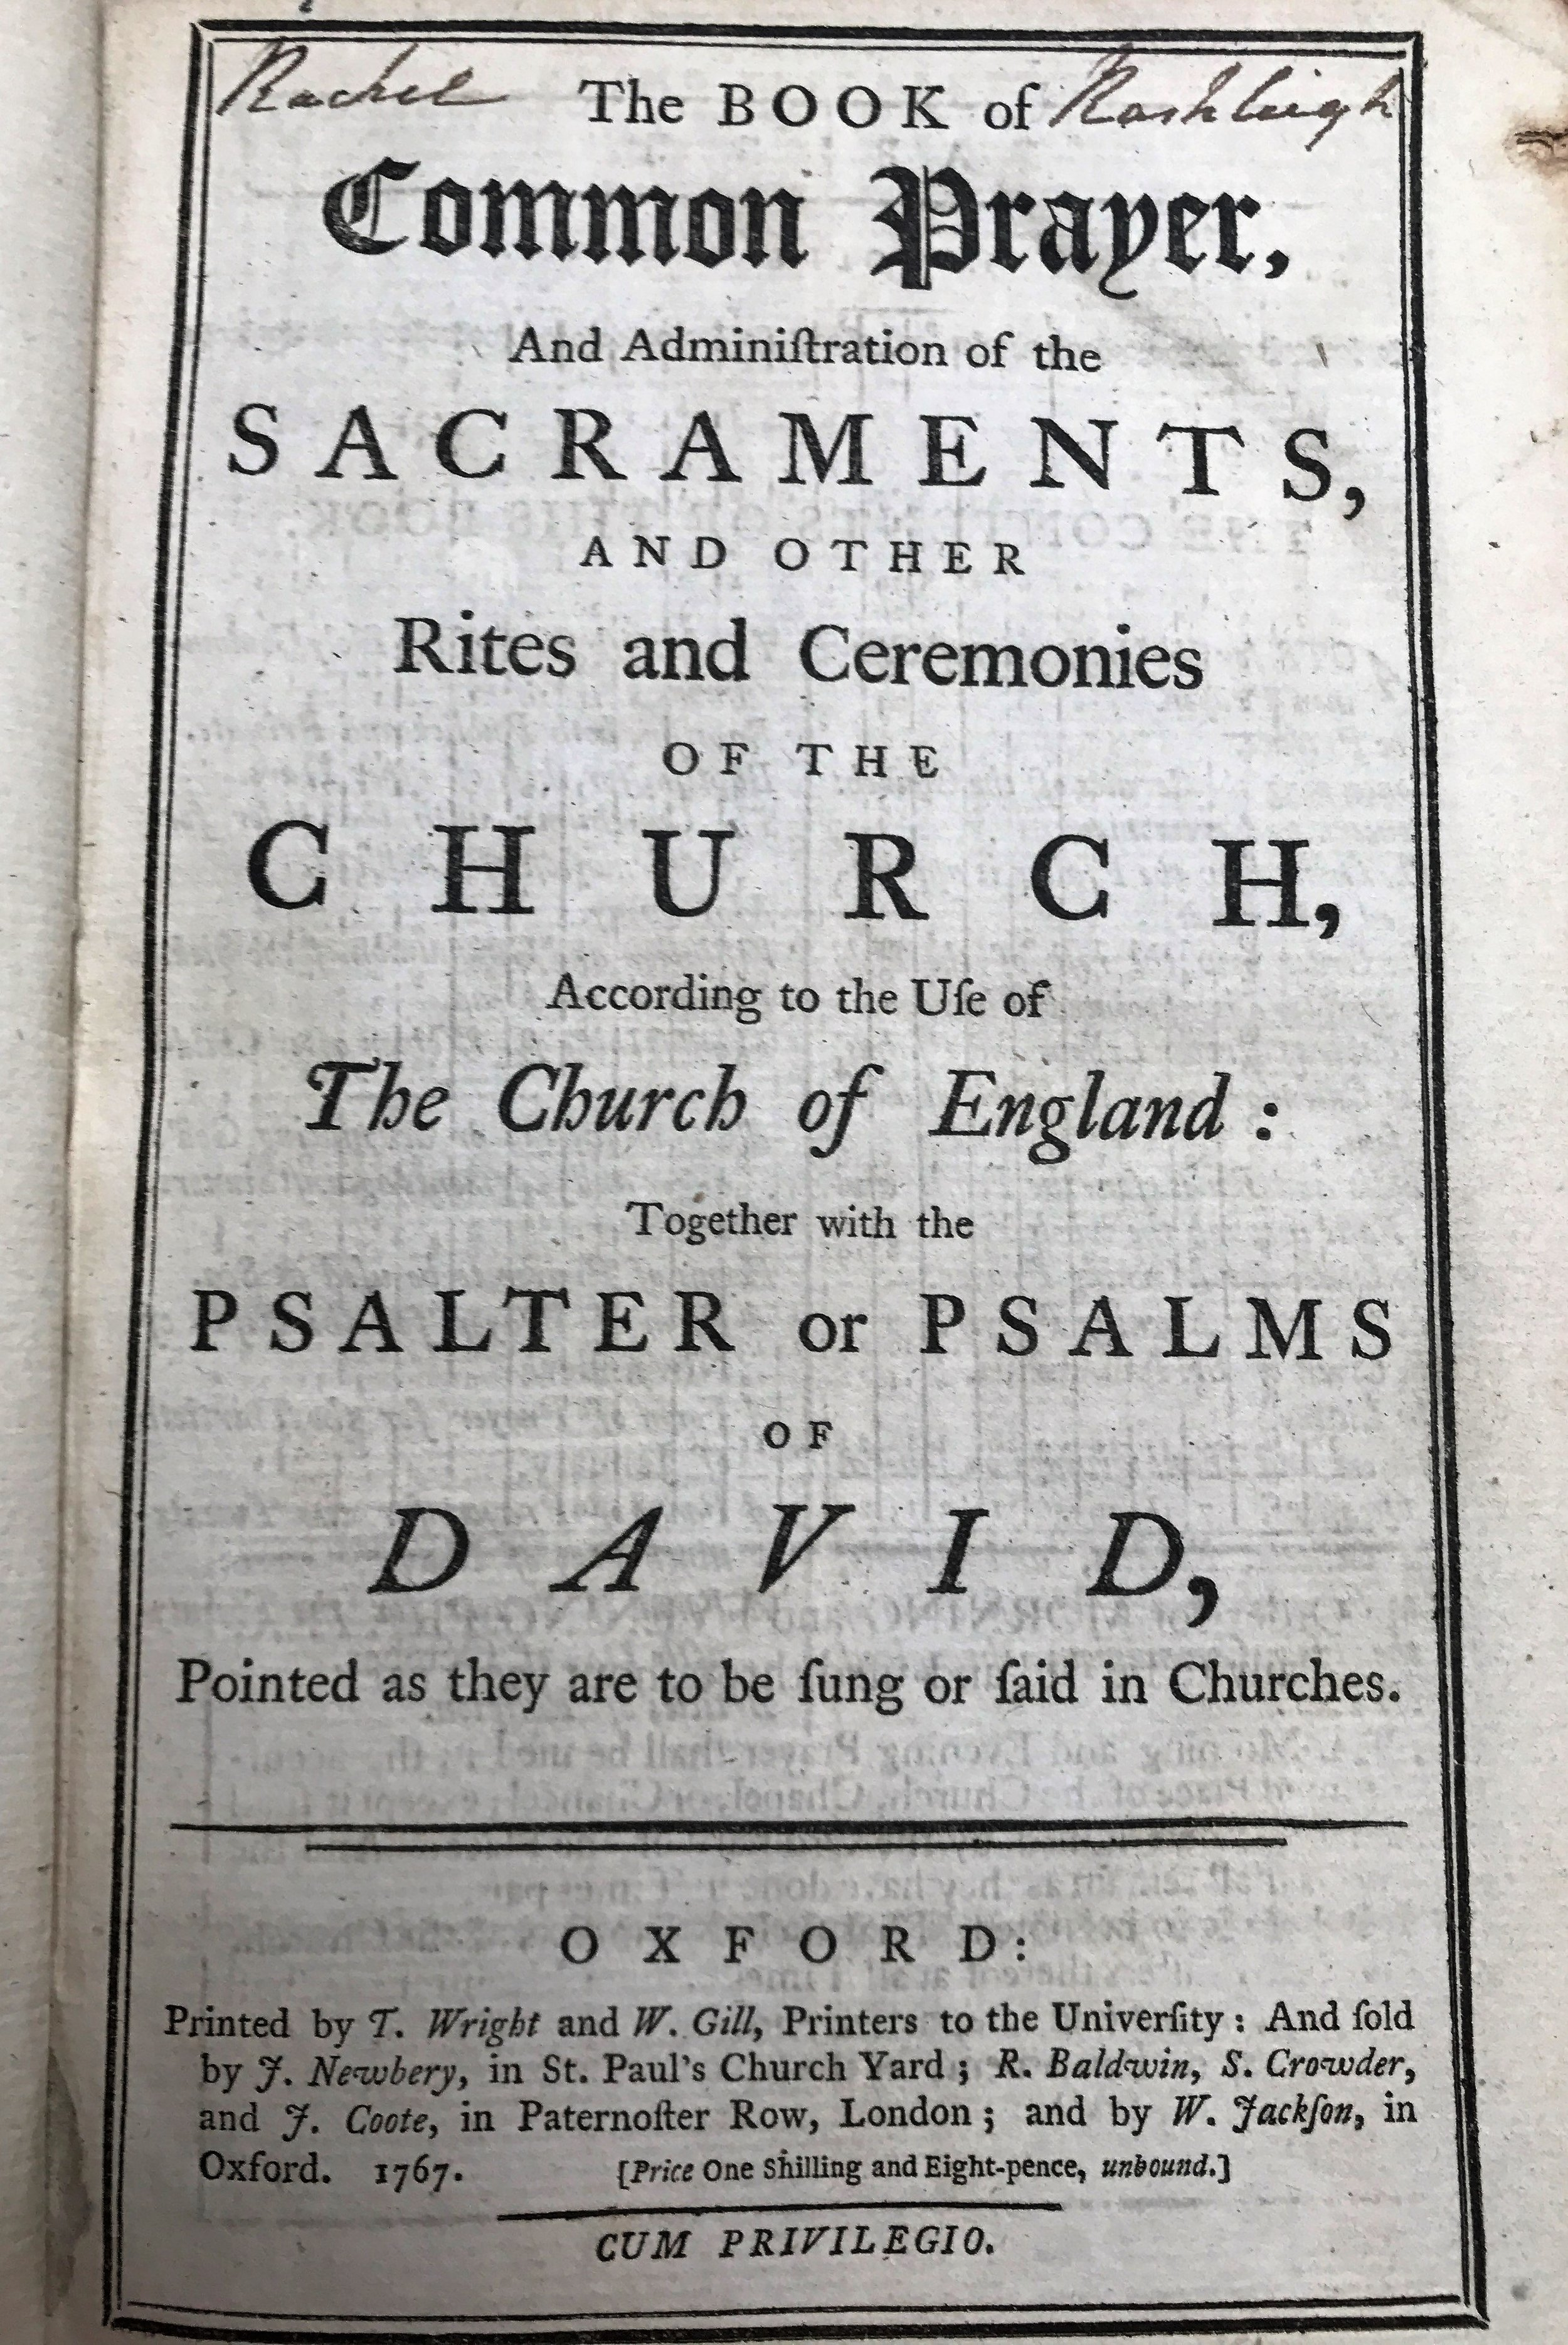 Wright & Gill book of common prayer printed in the year he built Bell House. Source: Bodleian Library